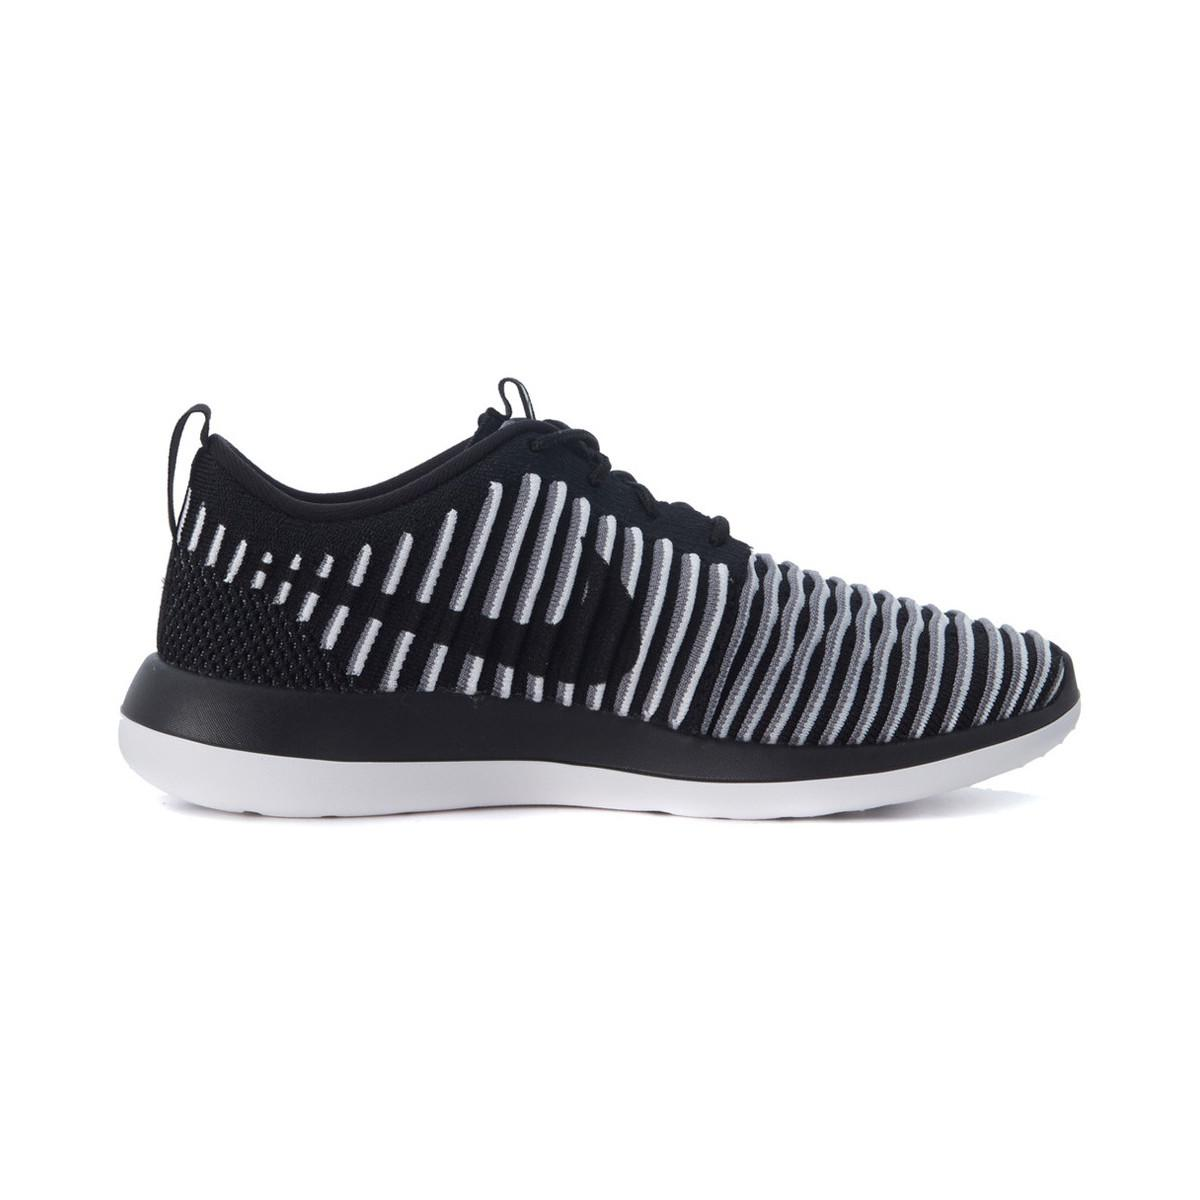 best website c32d2 a0943 ... authentic nike sneaker roshe one two flyknit in tessuto intrecciato  nero e bia 63587 920cd